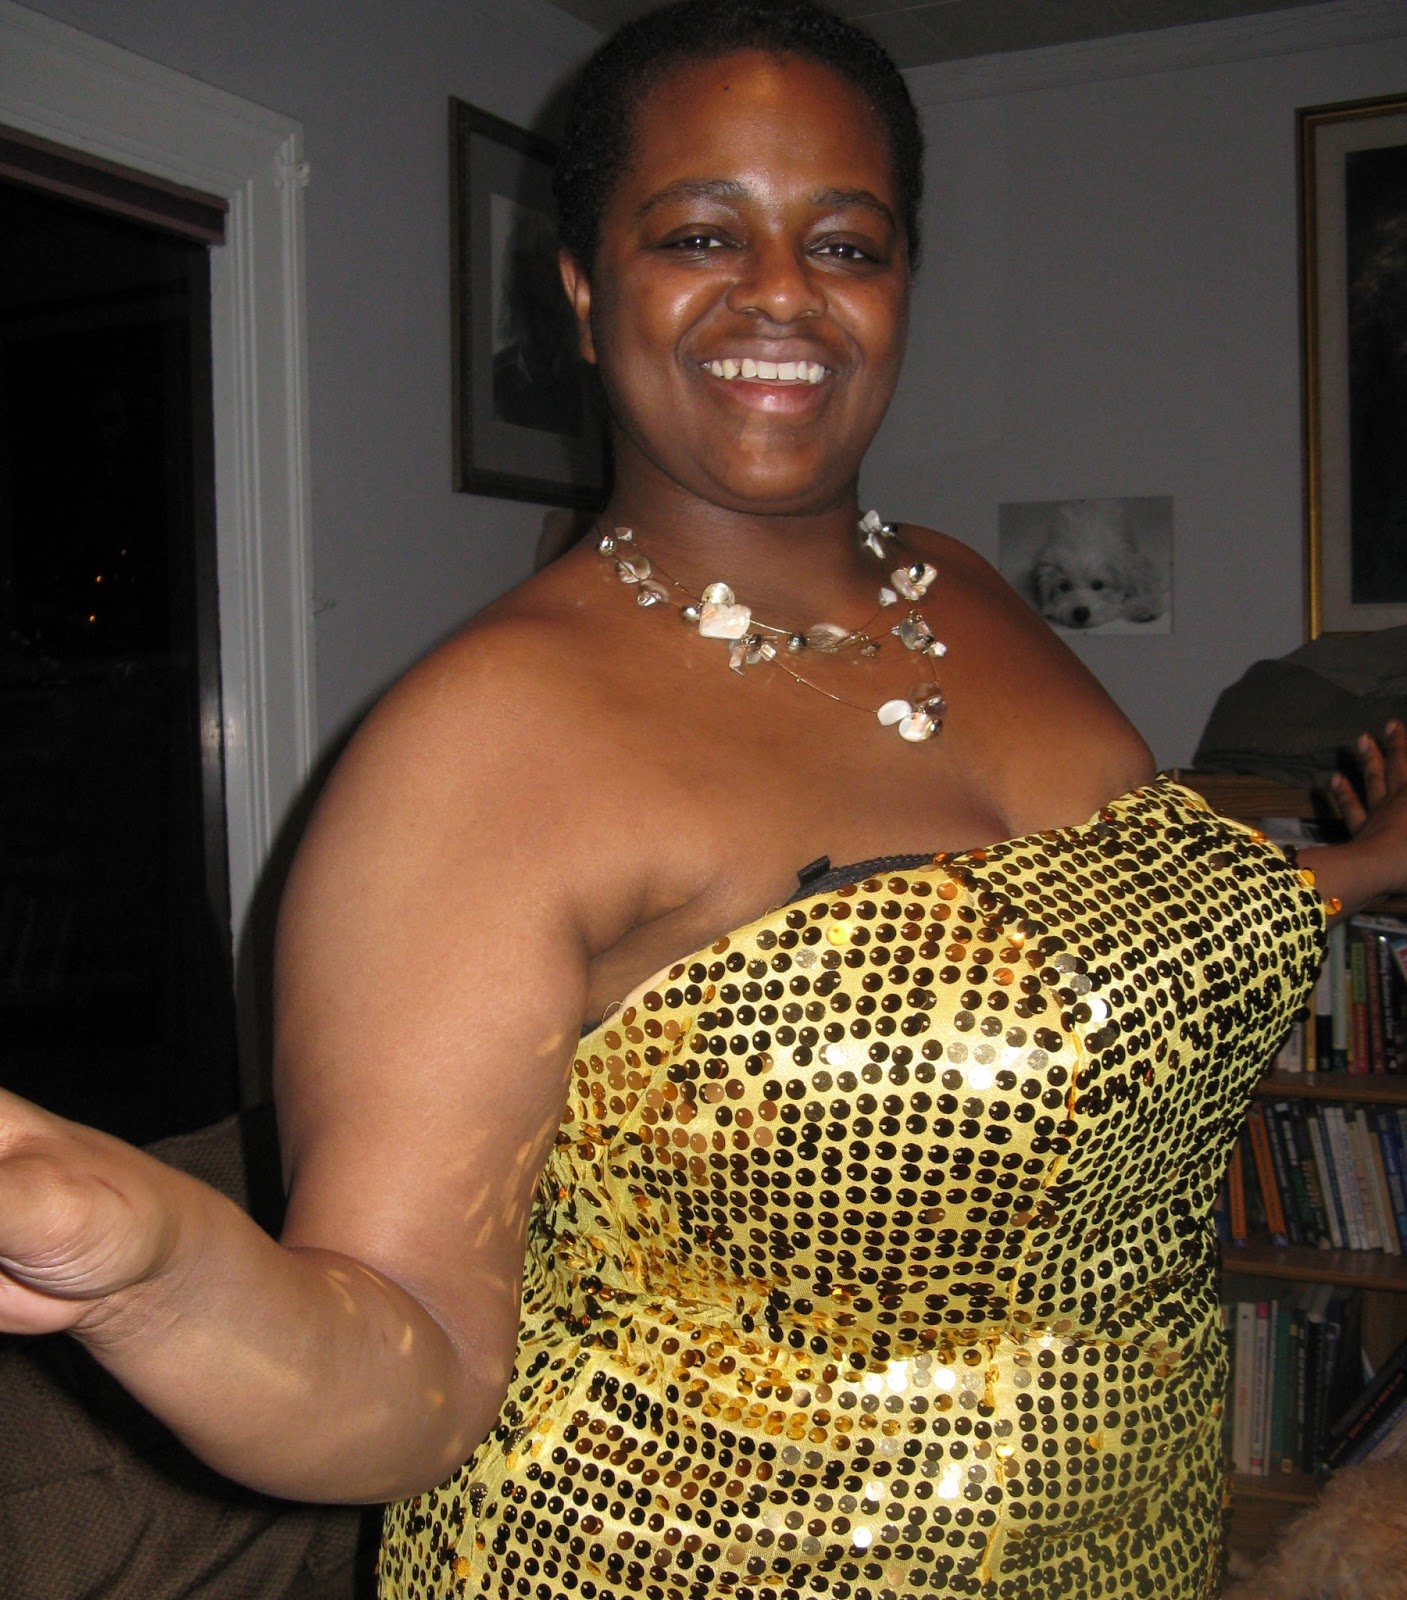 Big Mature Black Women 38